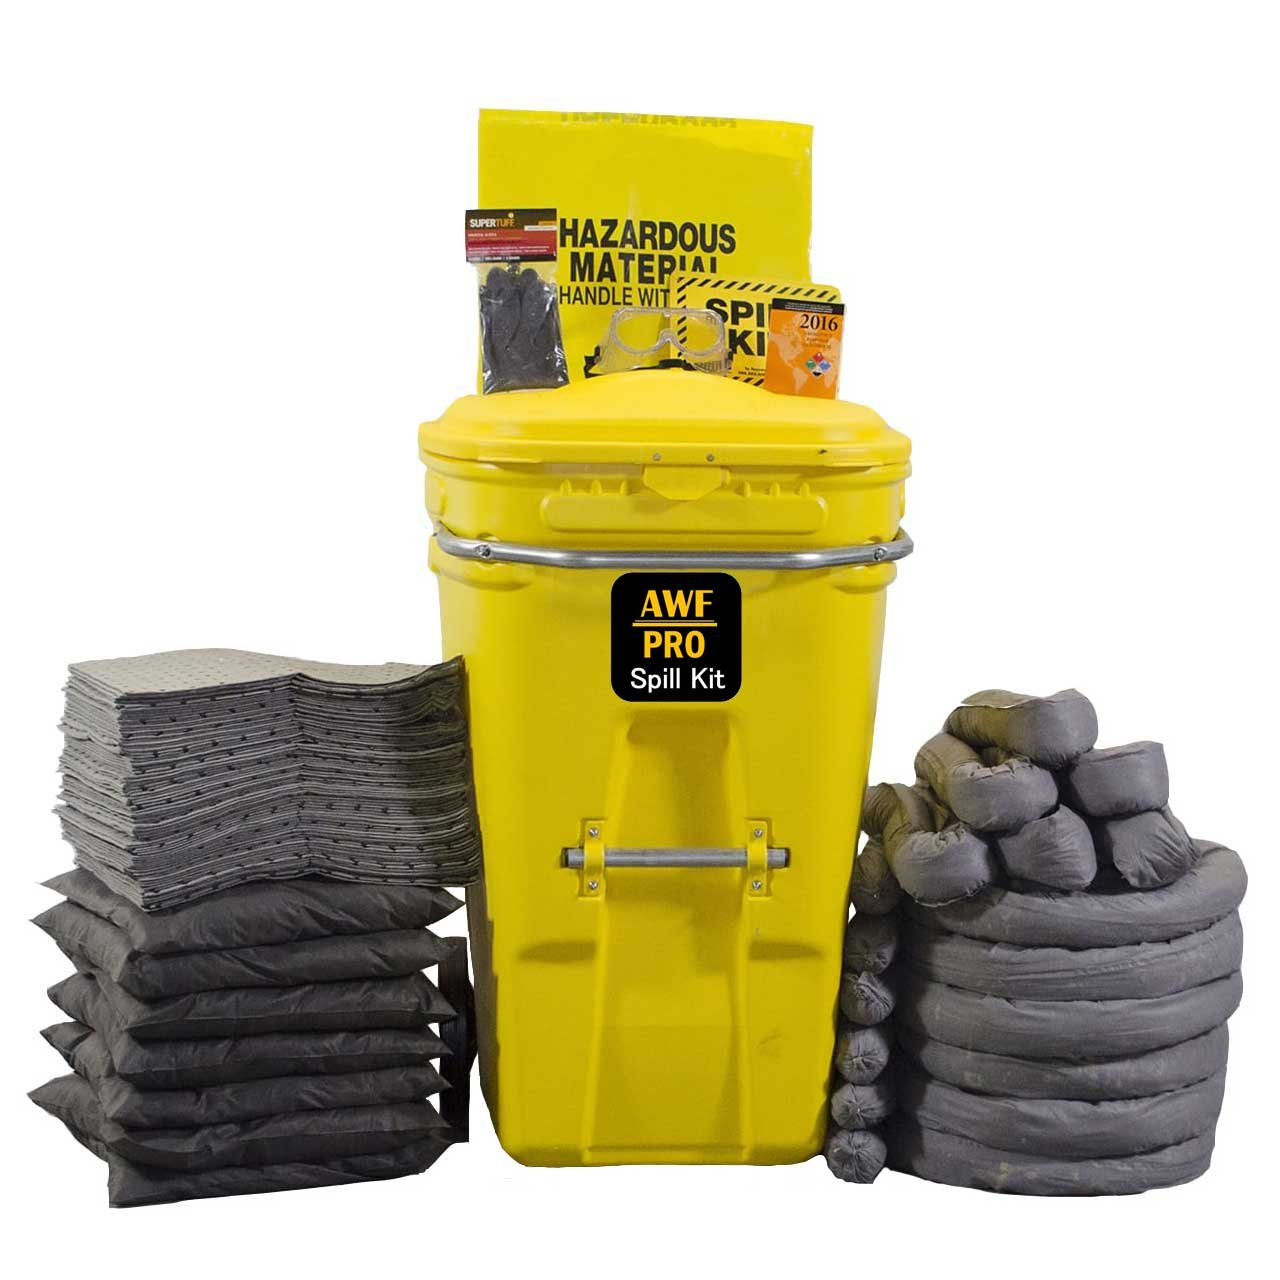 65 Gallon Universal Spill Kit Includes Wheeled Container, 75 Spill Pads 15''x19'',6 Socks 3''x12',6 socks 3''x4',7 Pillows 18''x18'',Safety Goggles,Chemical Gloves,Response Guidebook,Disposal Bag,Spill Sign